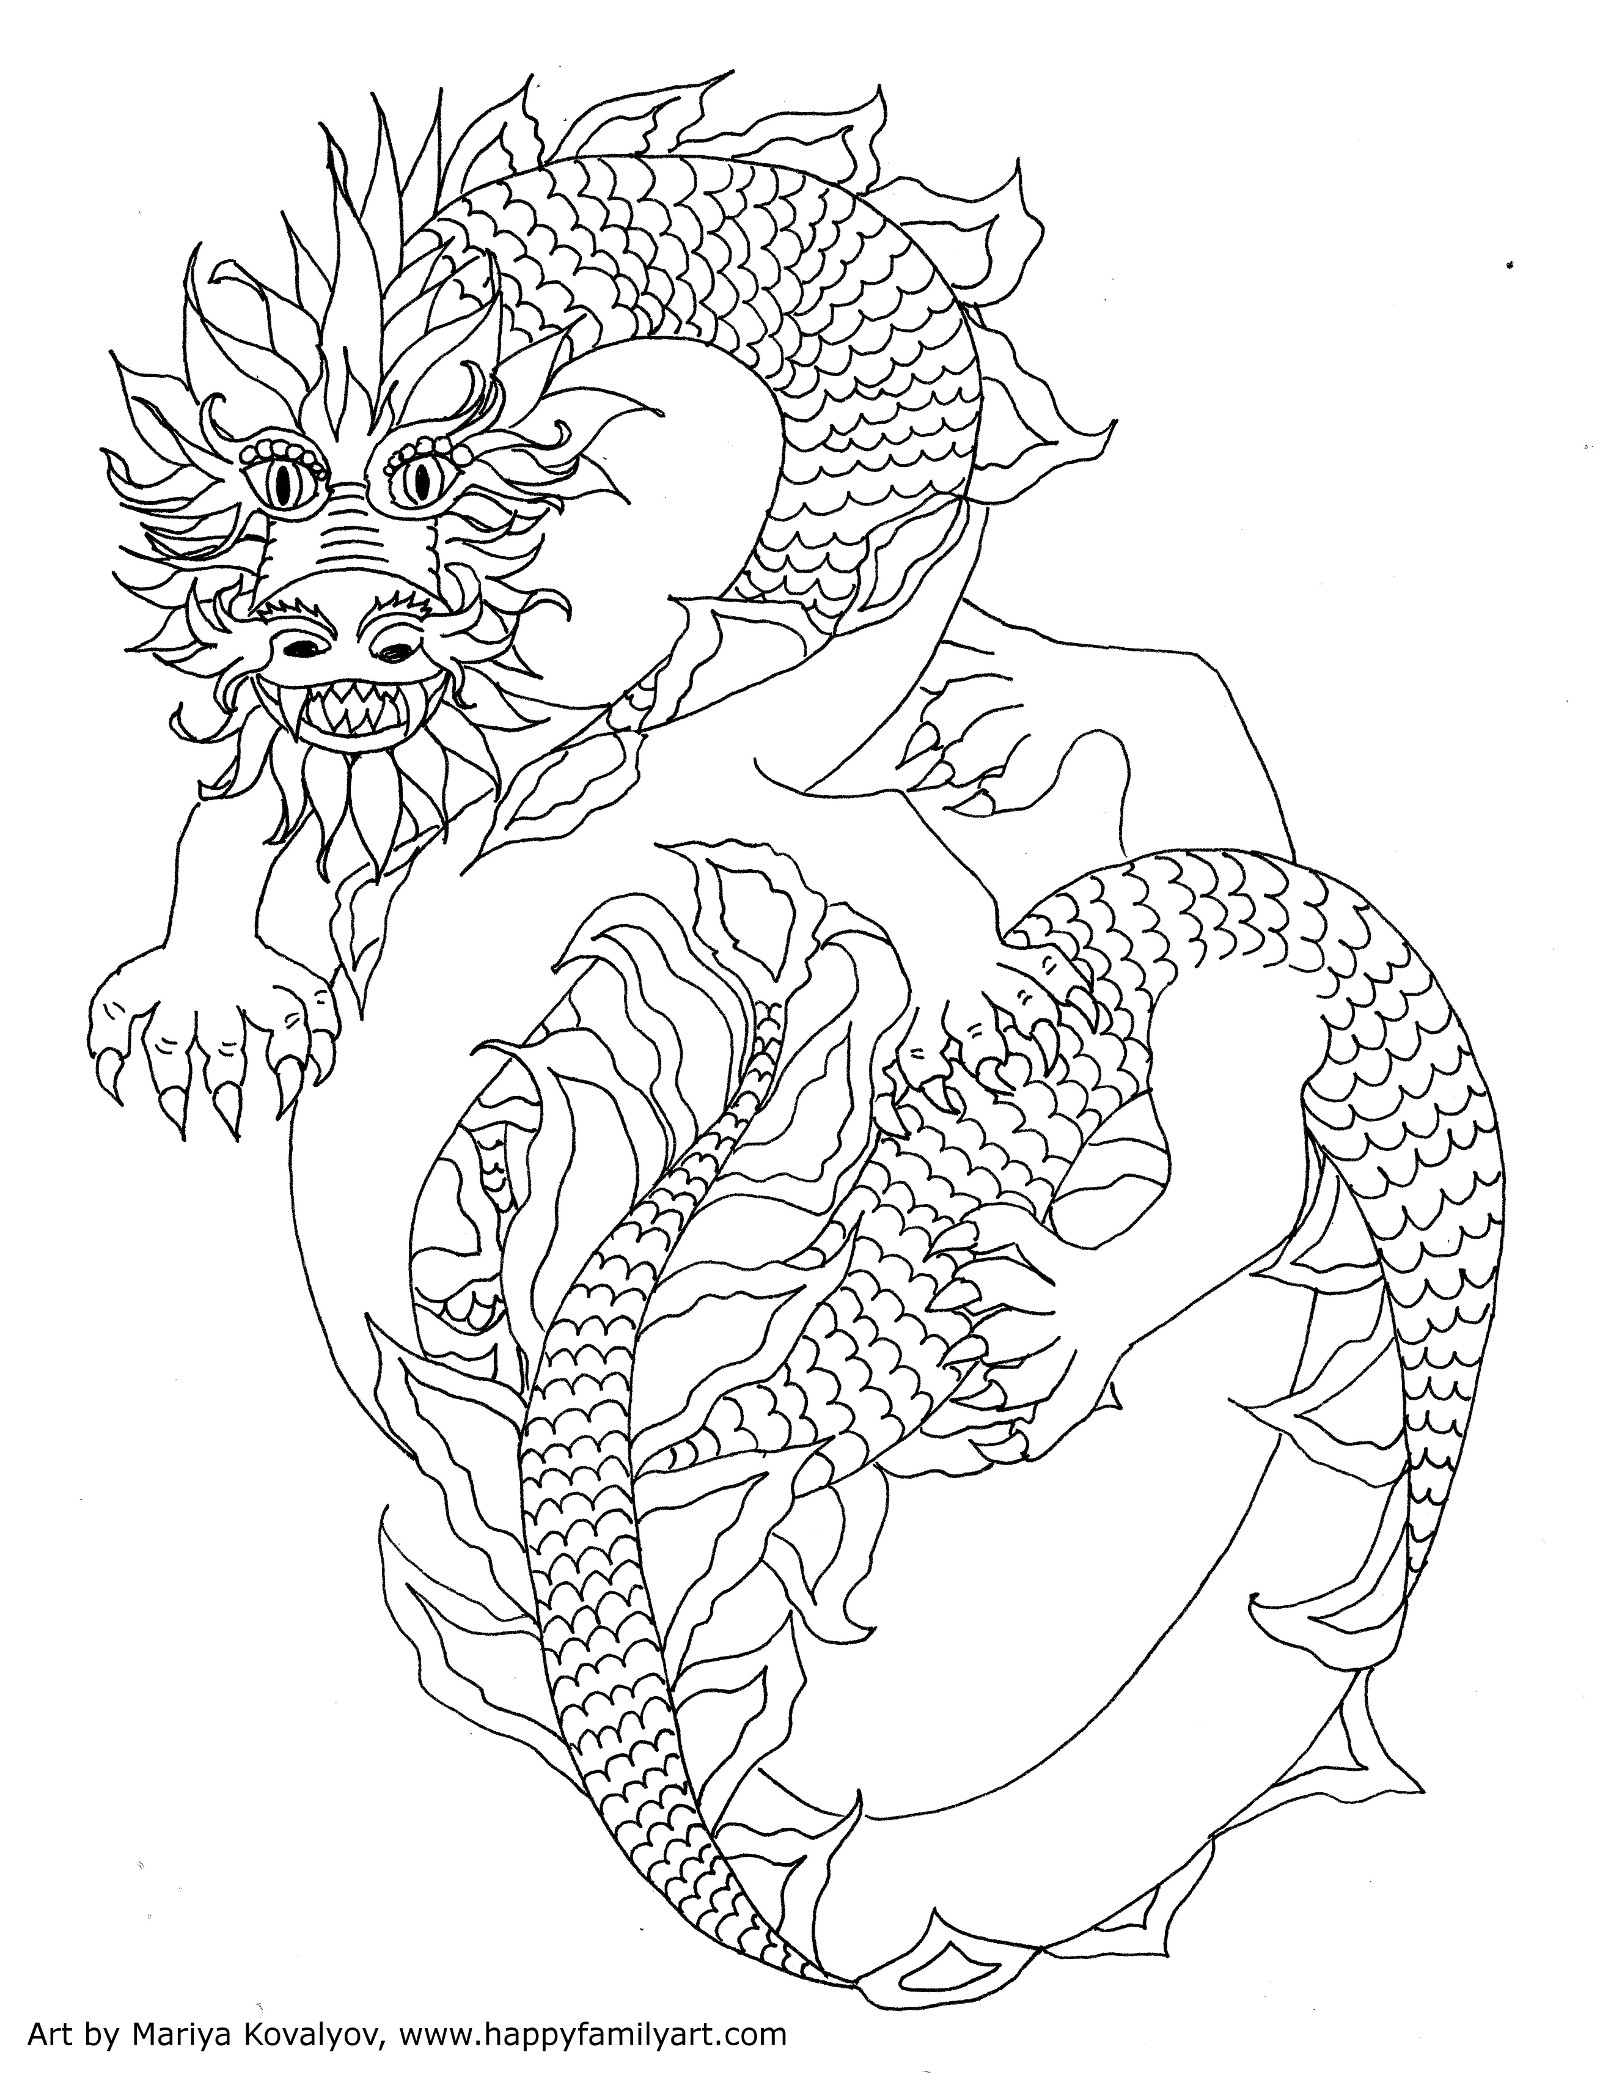 Adult colouring dragons frogs lizards snakes zentangles for Chinese new year dragon coloring page